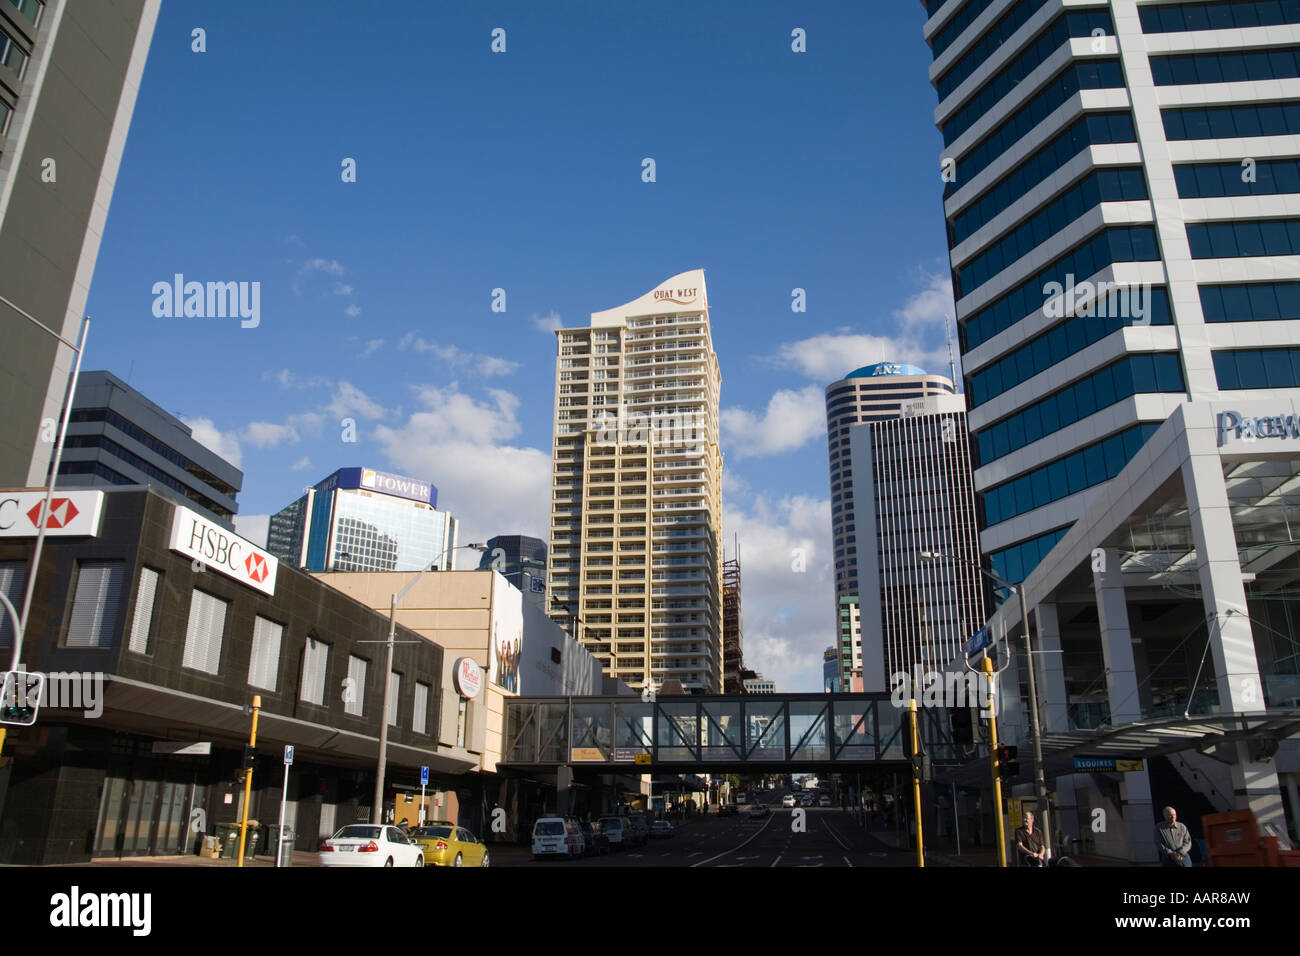 AUCKLAND NORTH ISLAND NEW ZEALAND May Looking up Albert Street towards the Central Business District skyscrapers - Stock Image